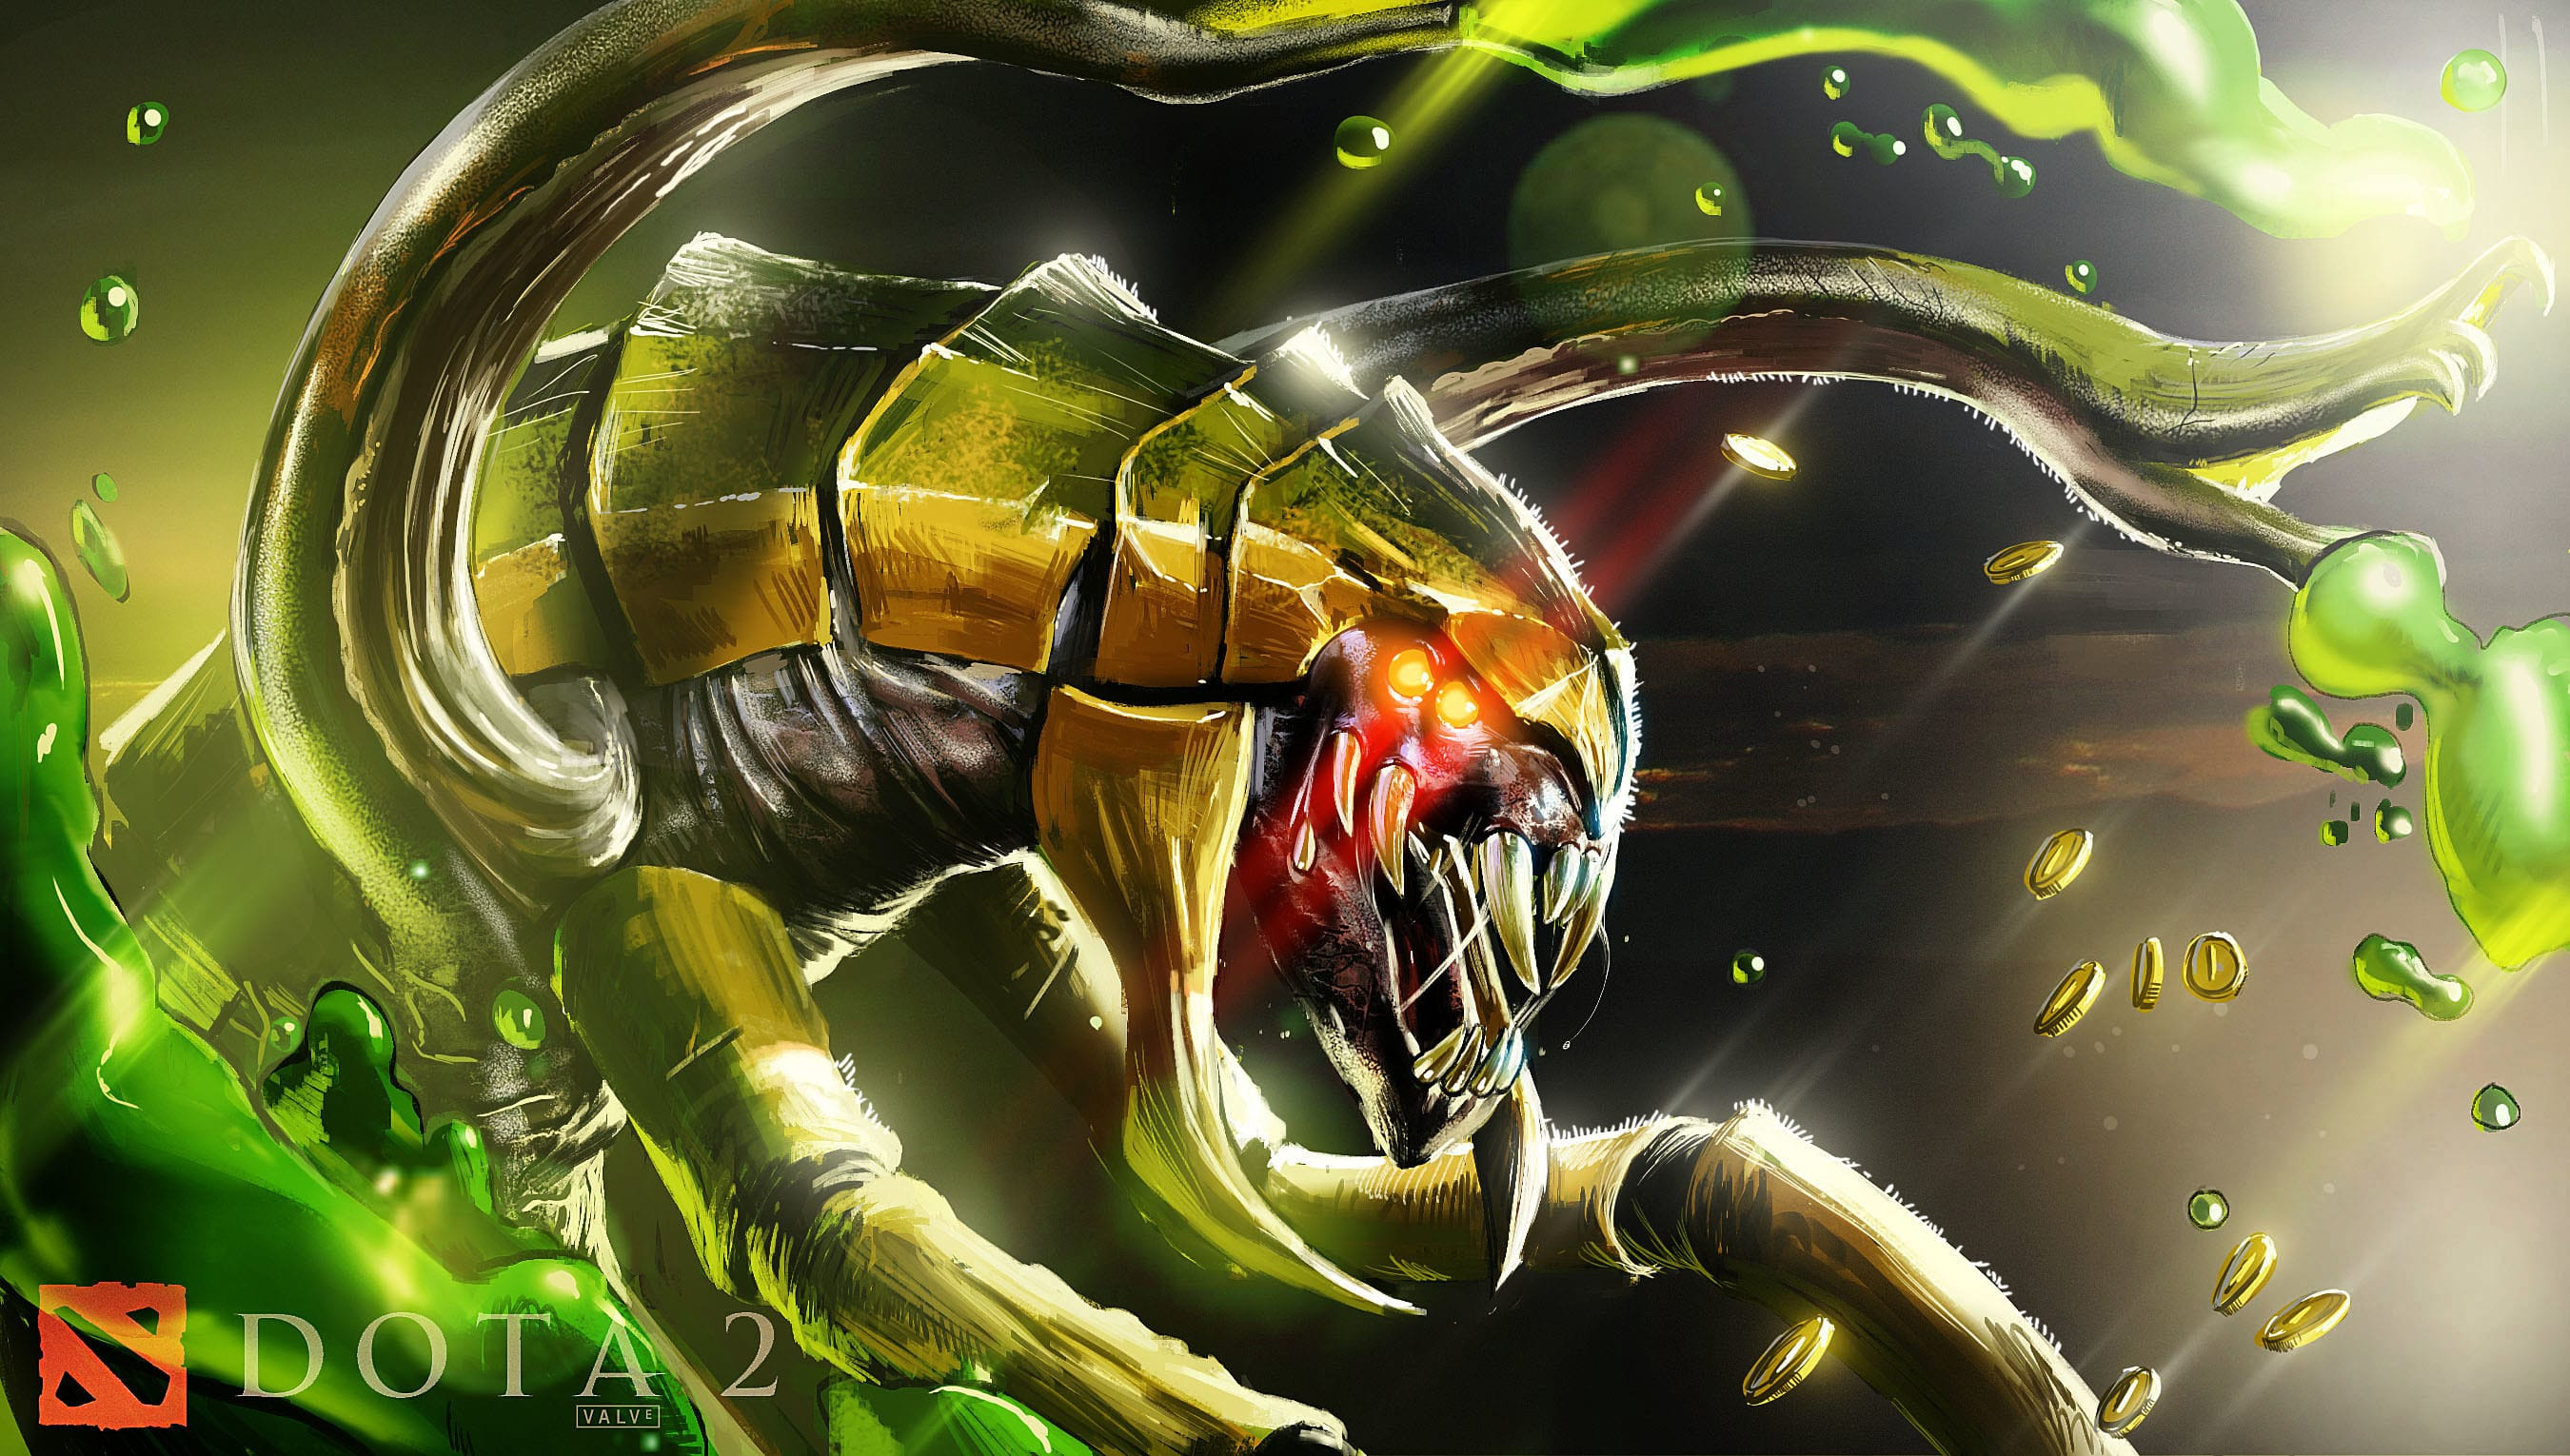 Dota2 : Venomancer widescreen